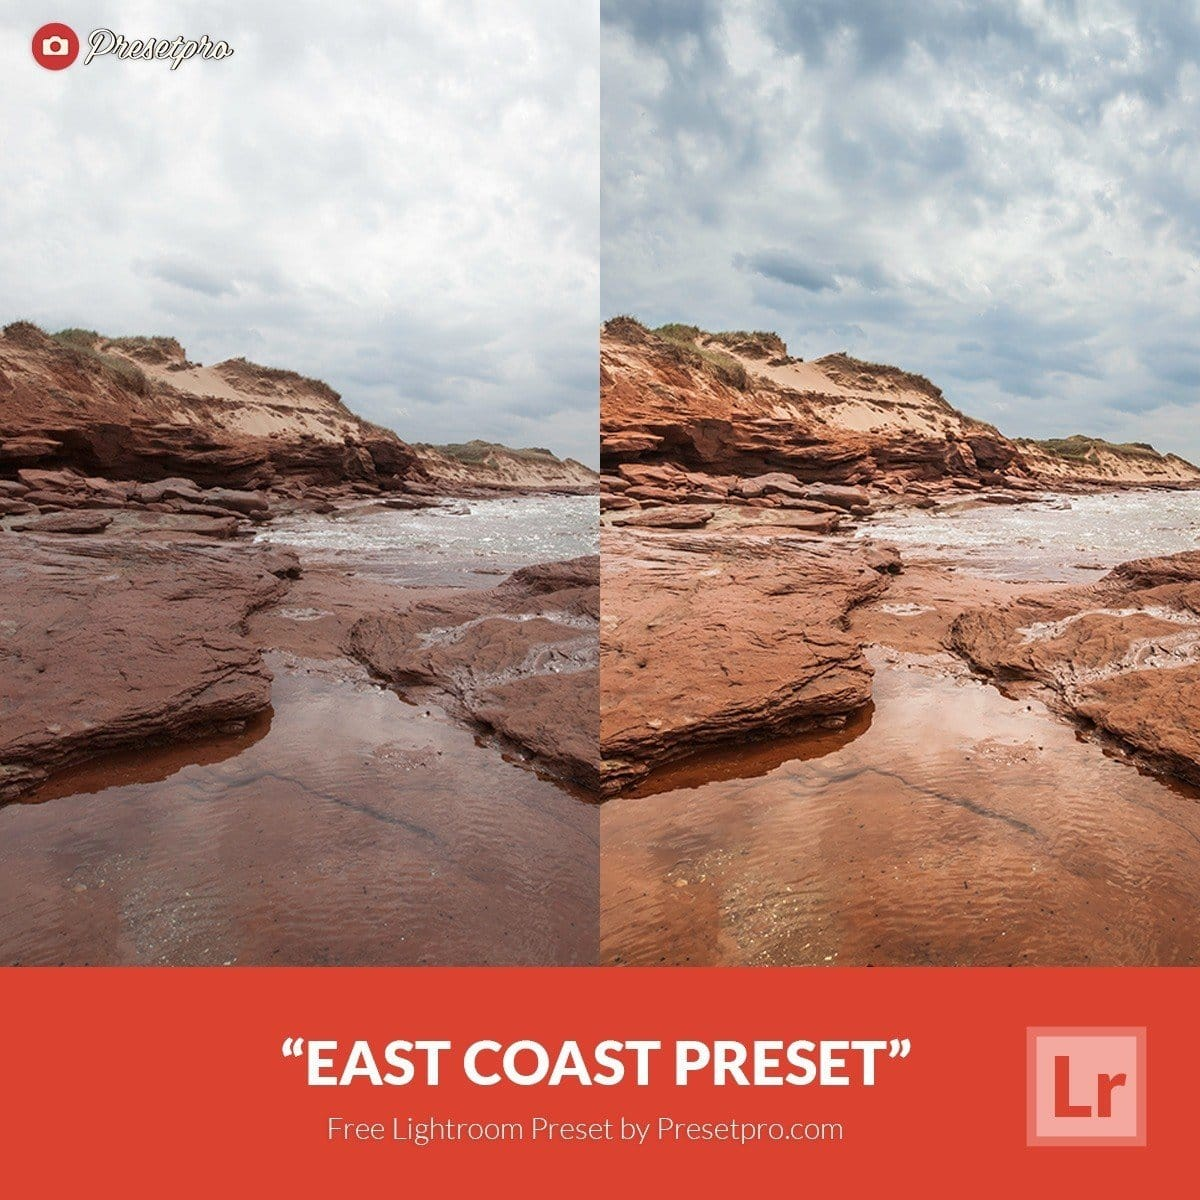 Free-Lightroom-Preset-East-Coast